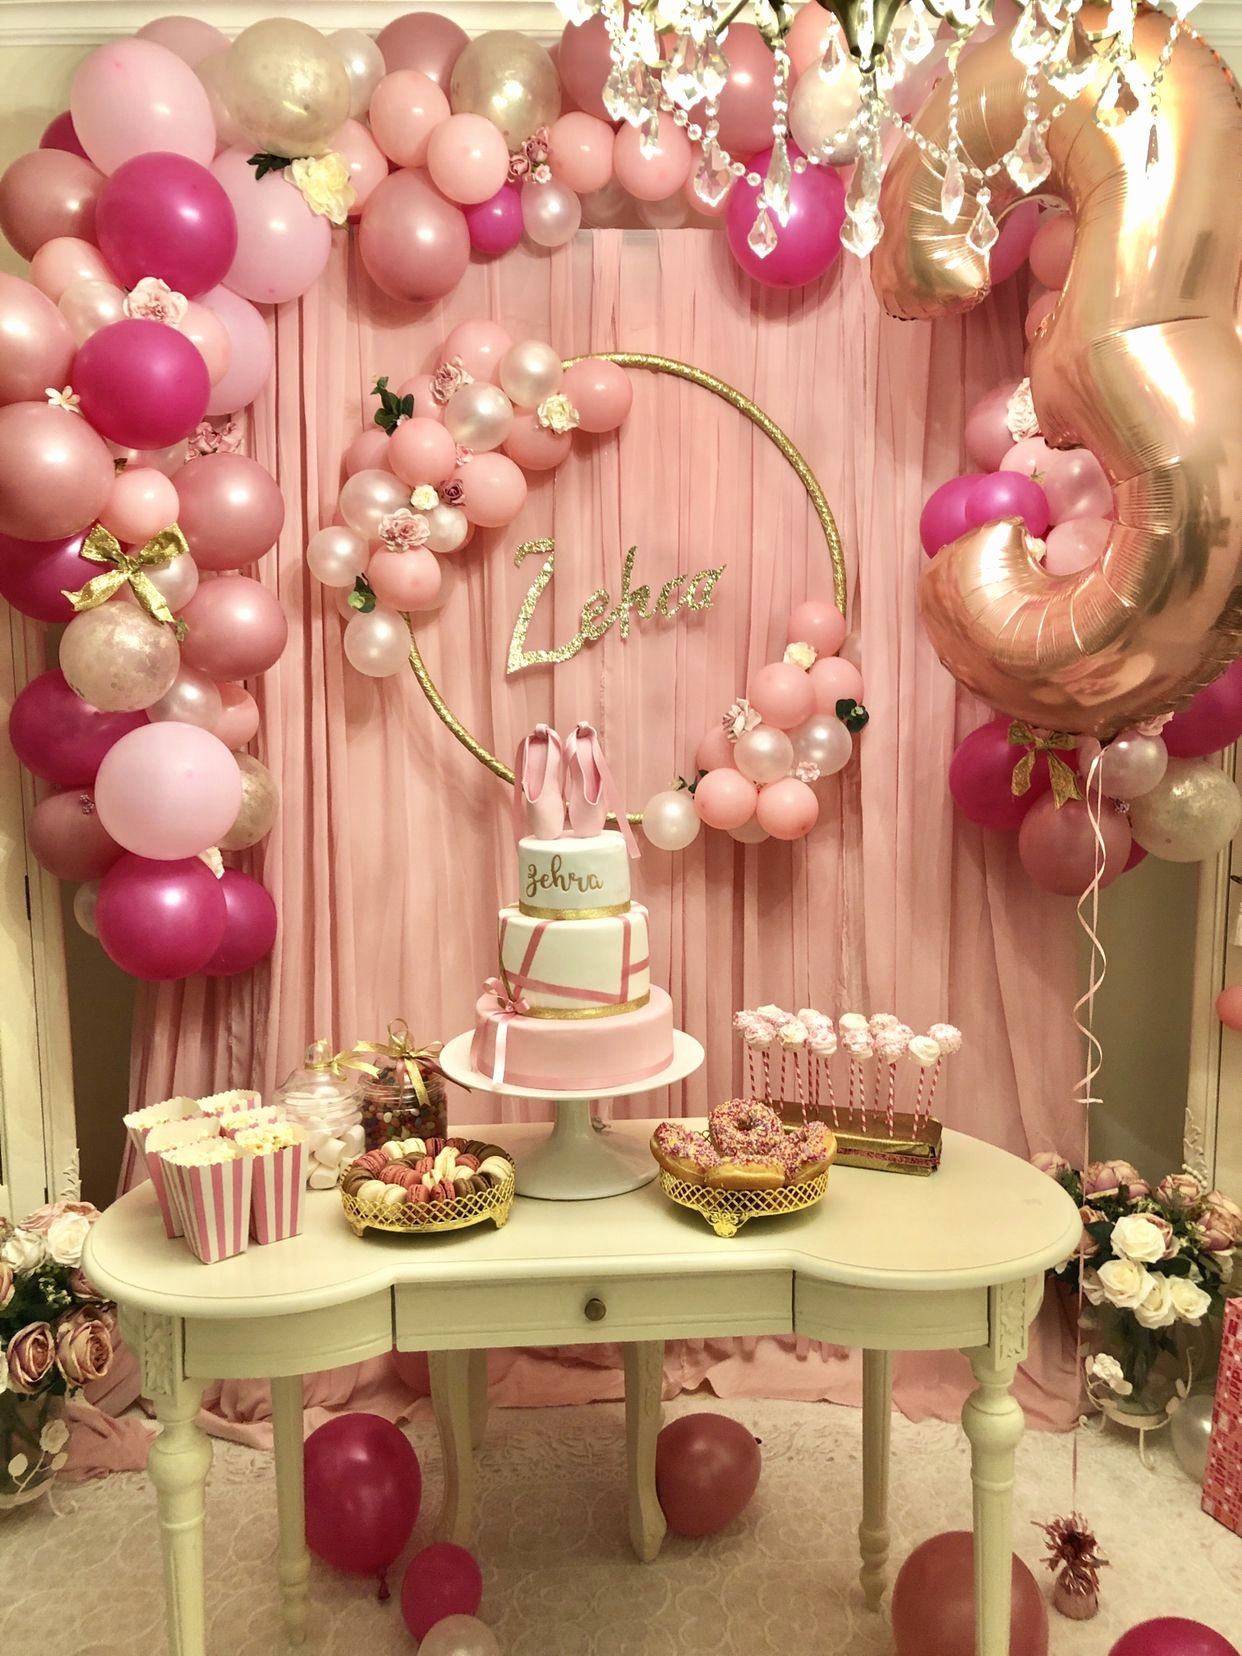 18th Birthday Decoration Ideas for Daughter Elegant 3rd Birthday Party